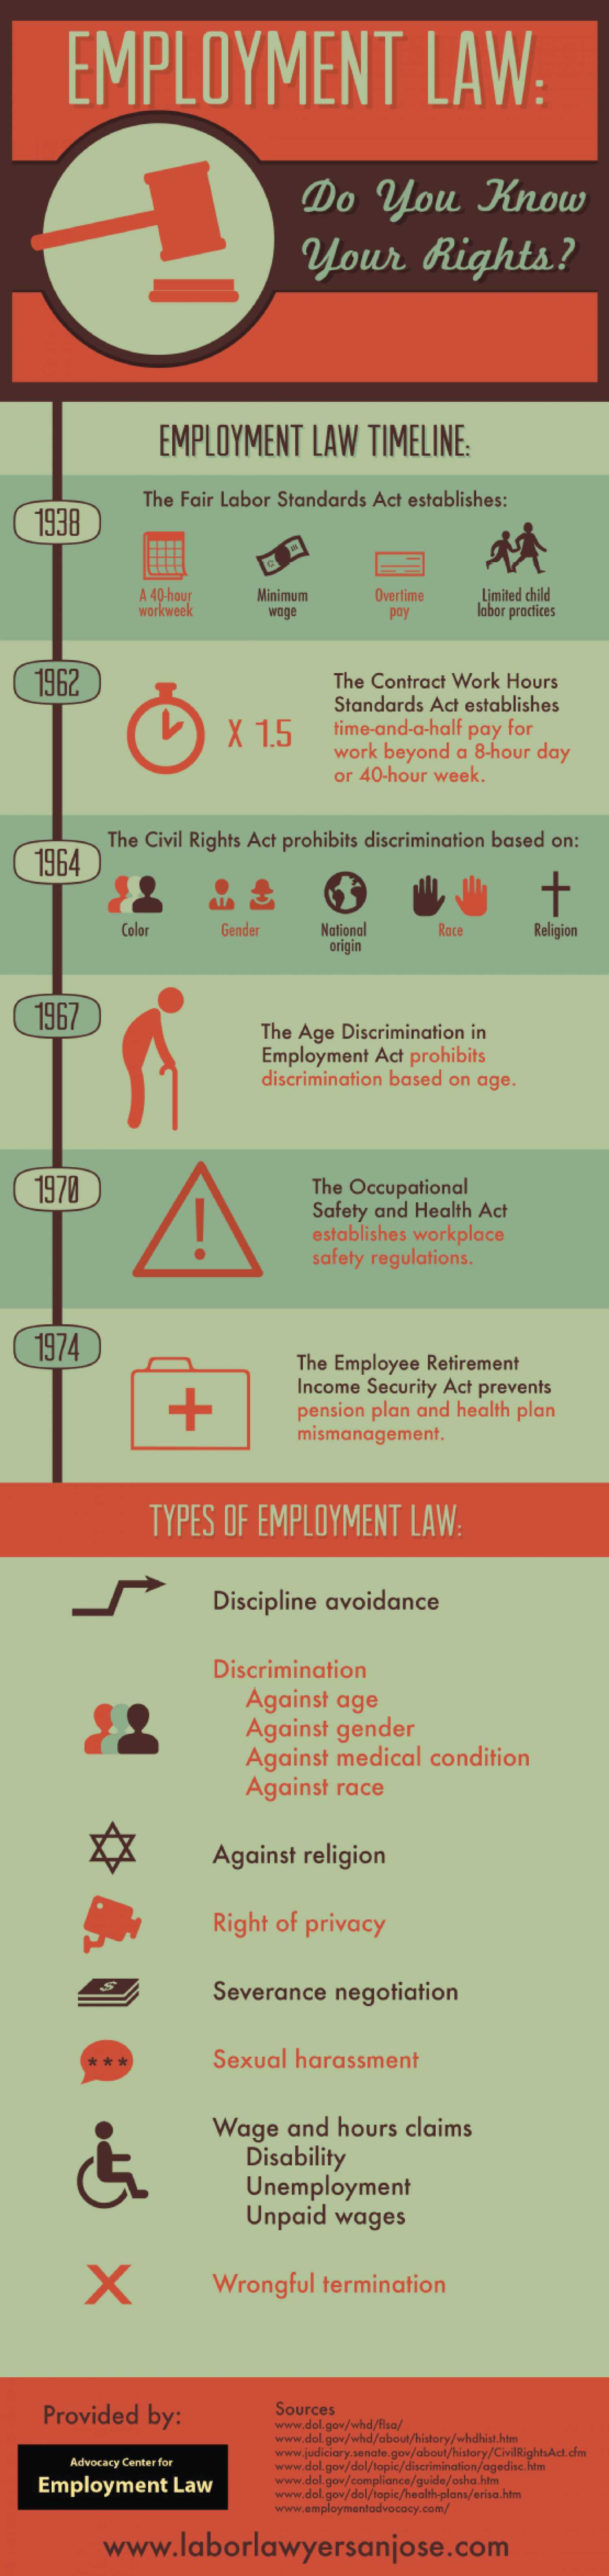 Employment Law: Do You Know Your Rights? Infographic